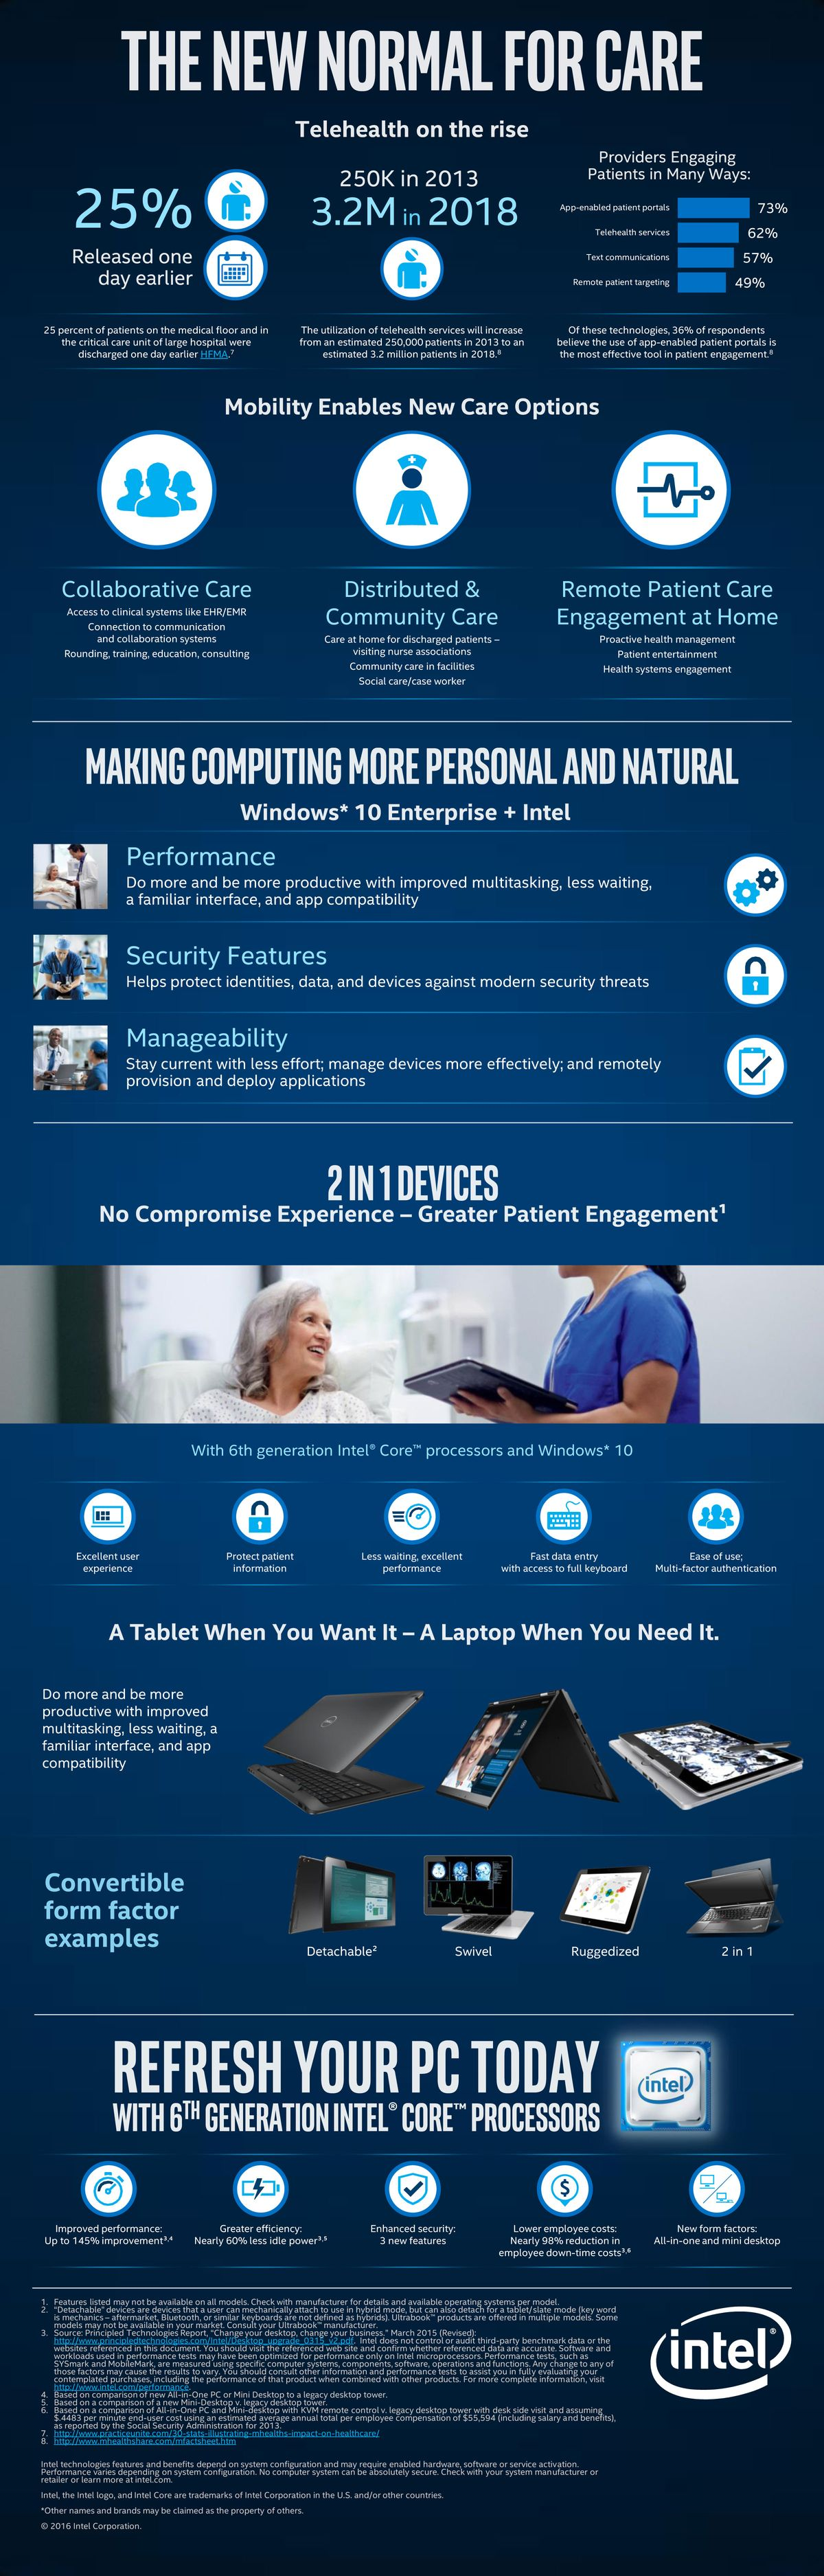 Infographic telehealth the new normal for